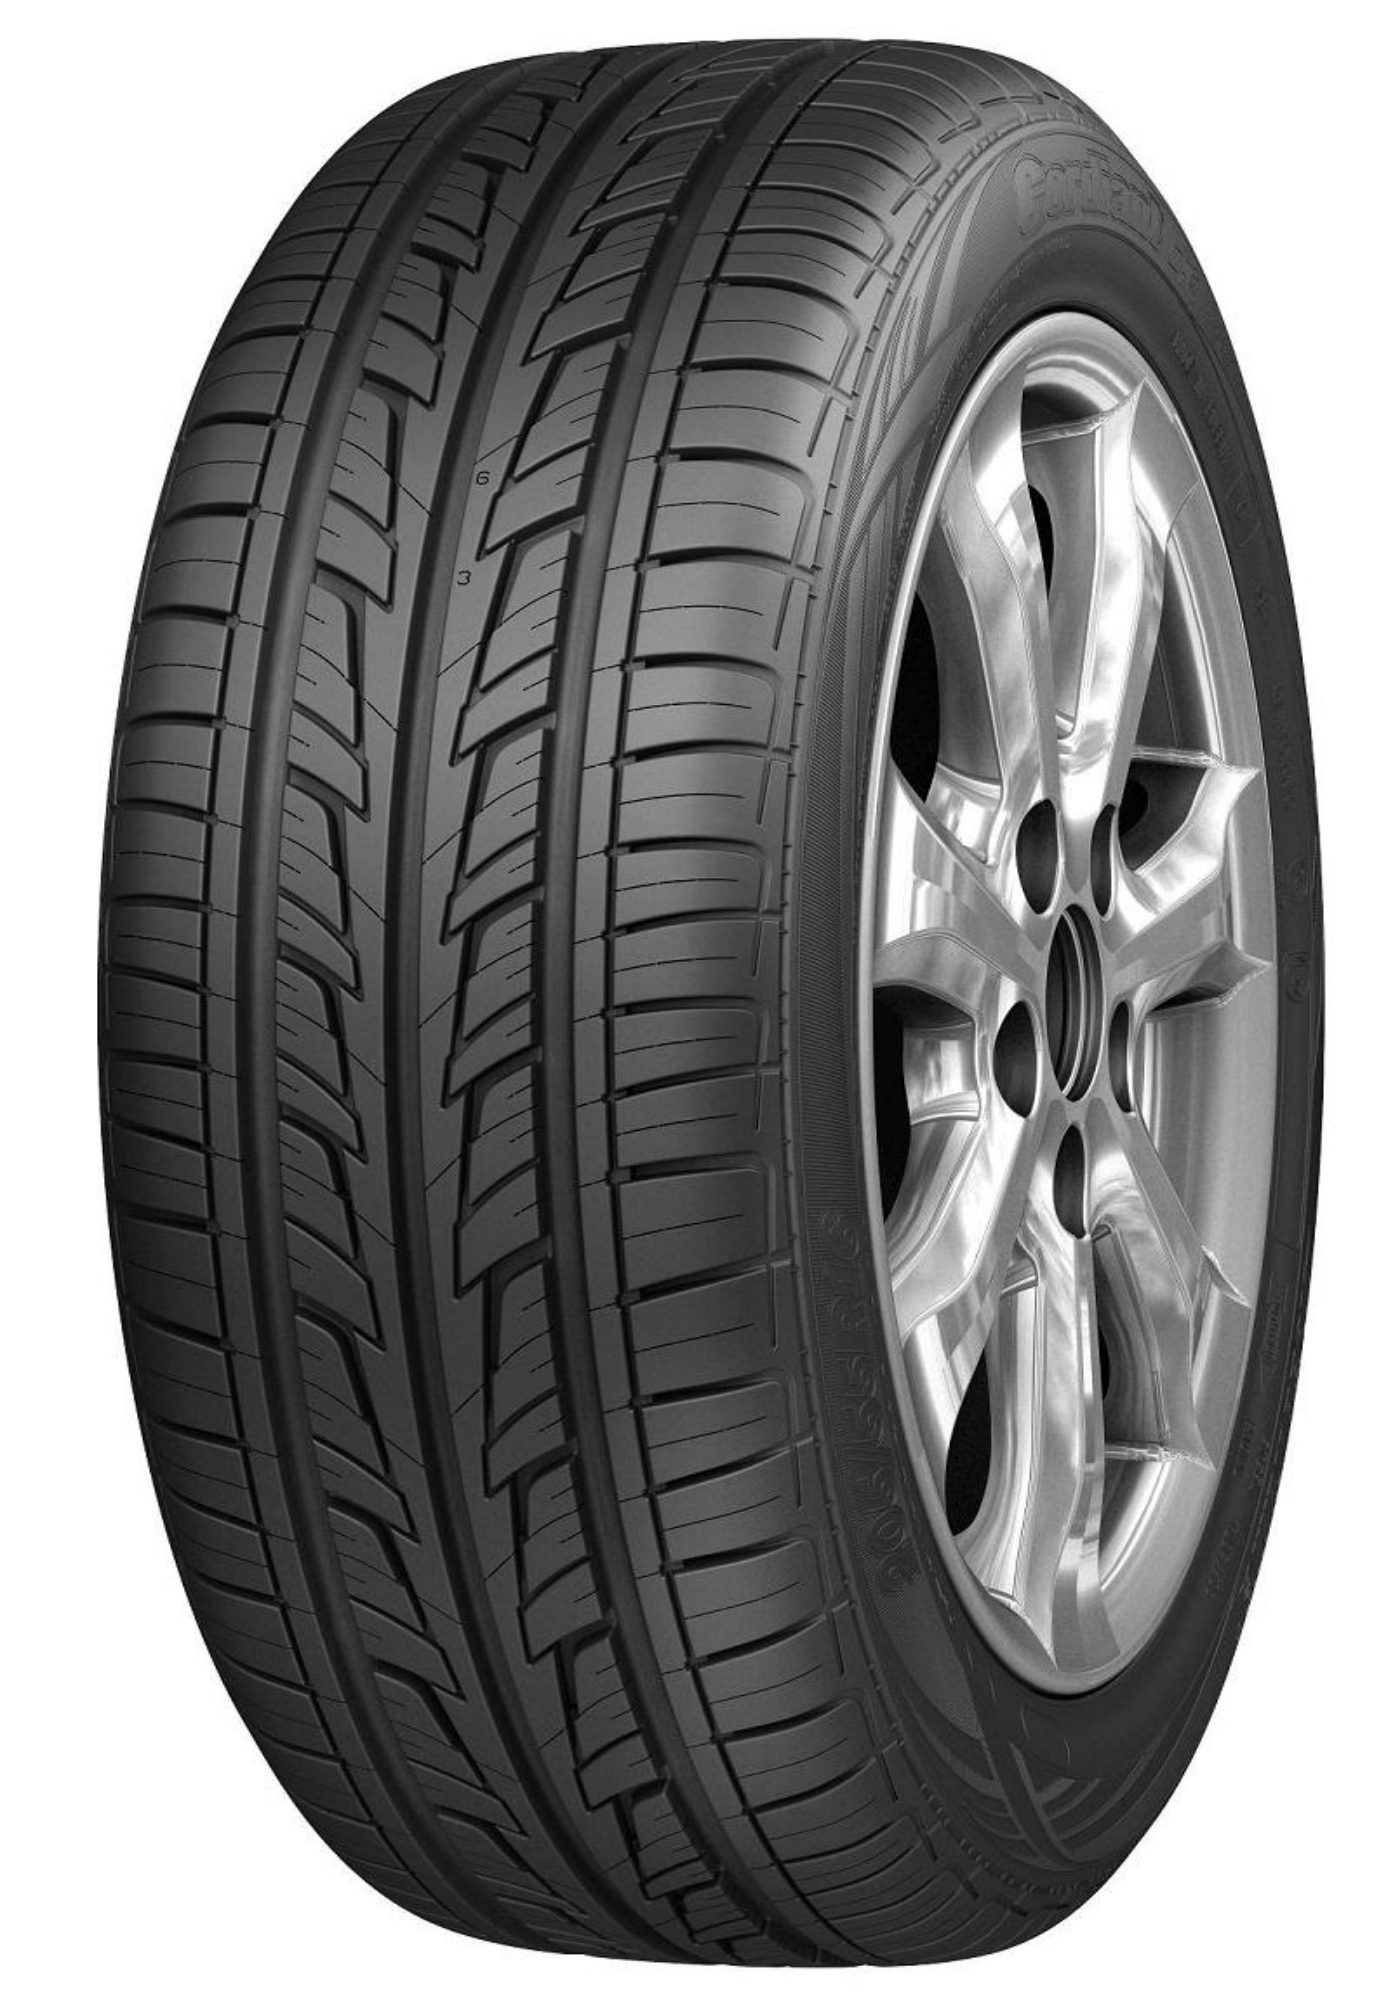 летние шины Cordiant Road Runner 175/70 R13 82/H